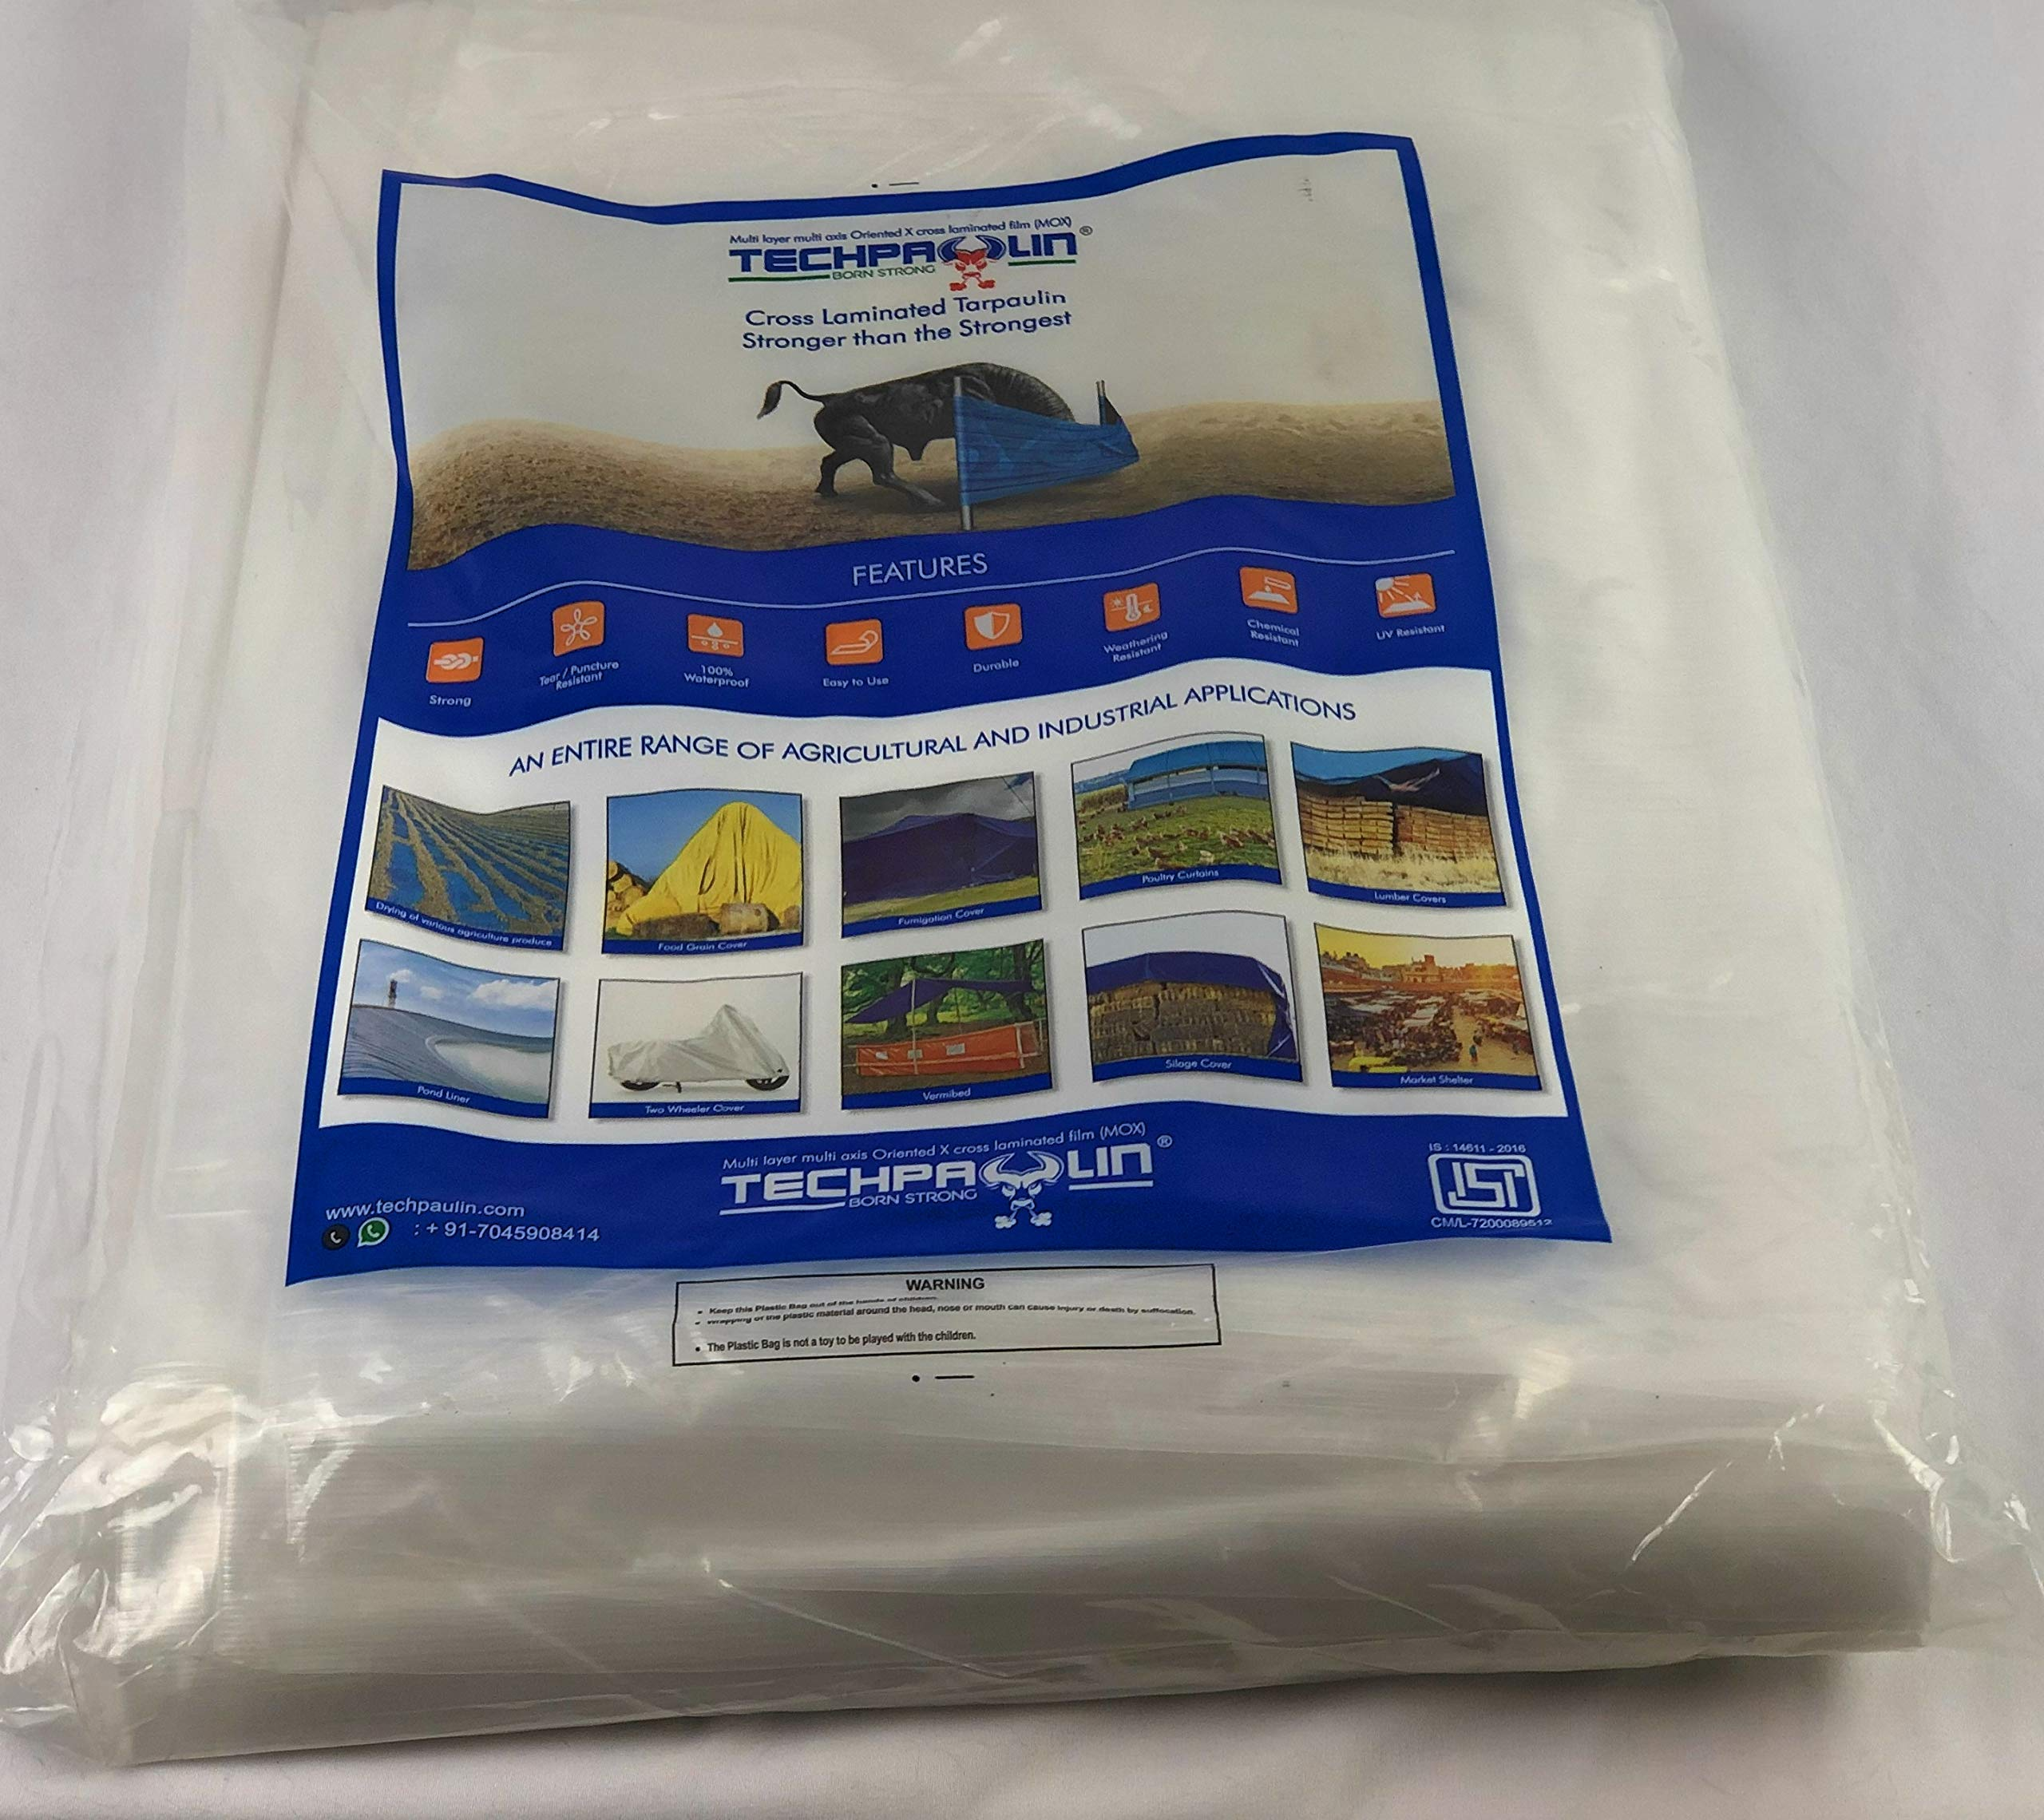 12x16 Heavy Duty Clear Tarp, MOX Film Technology, Premium tarp, Anti-Tear, Waterproof, UV Resistant, 22 Variations by Queen of Tarps